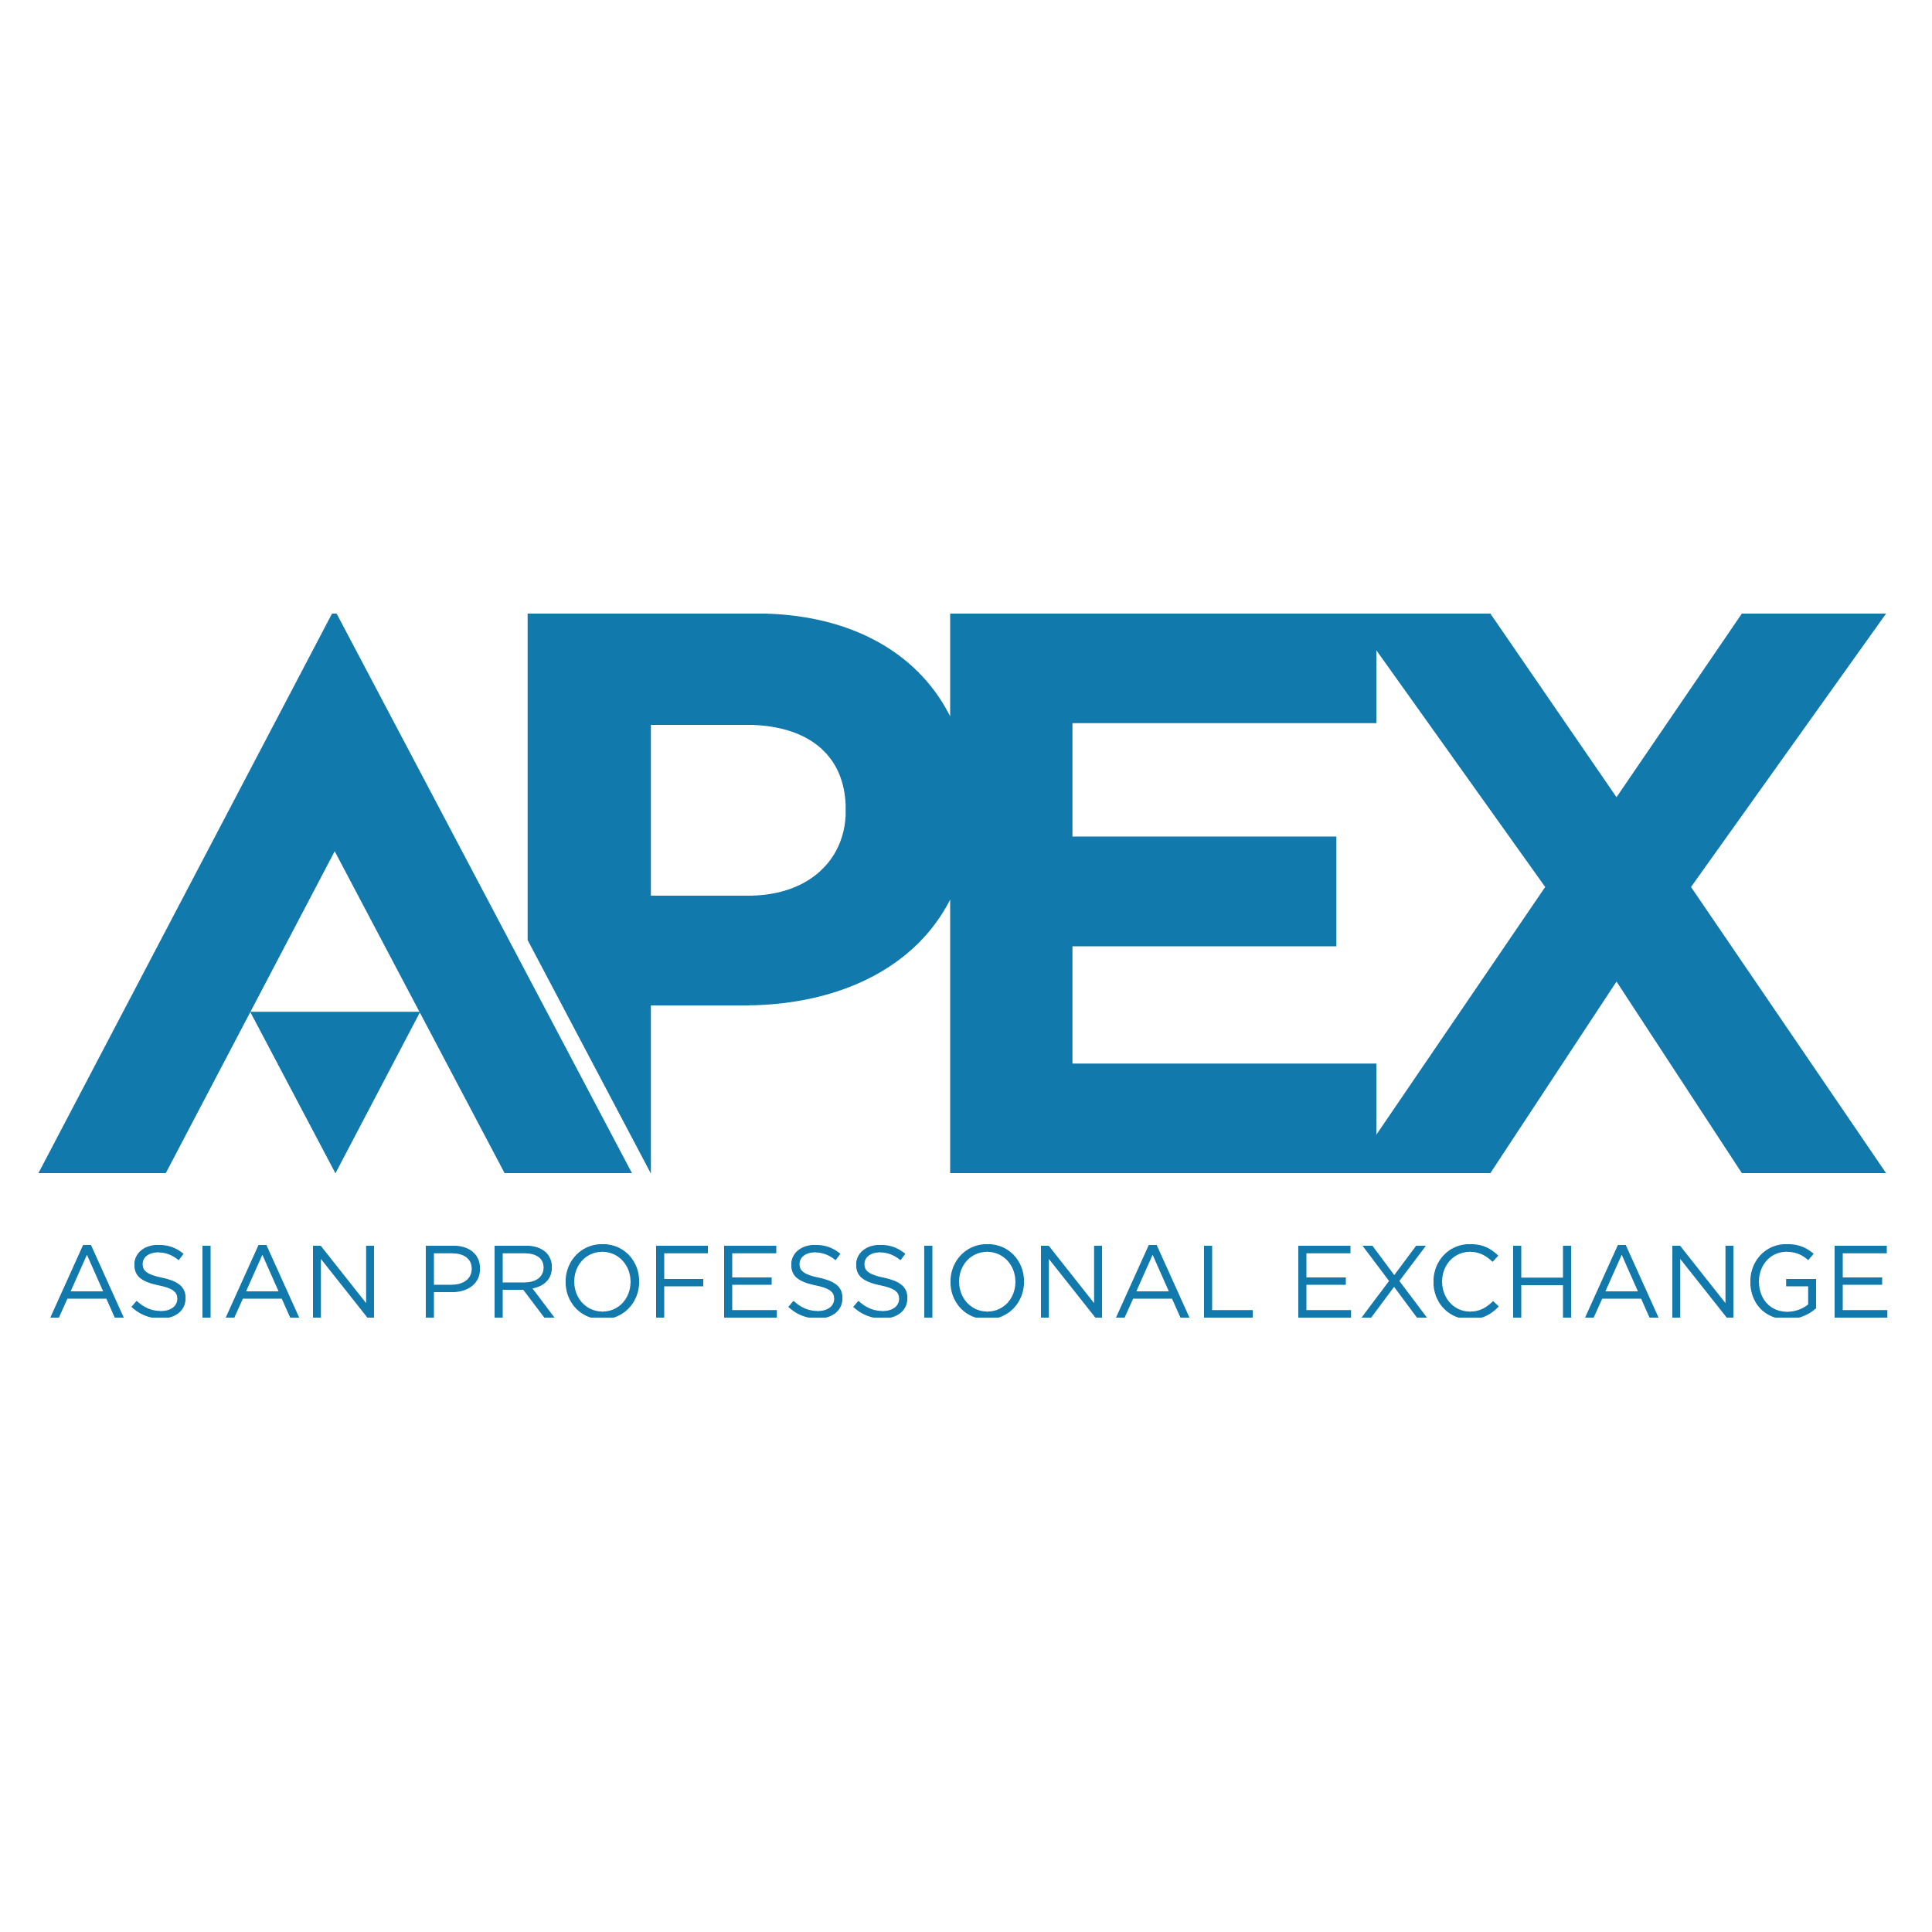 Asian Professional Exchange